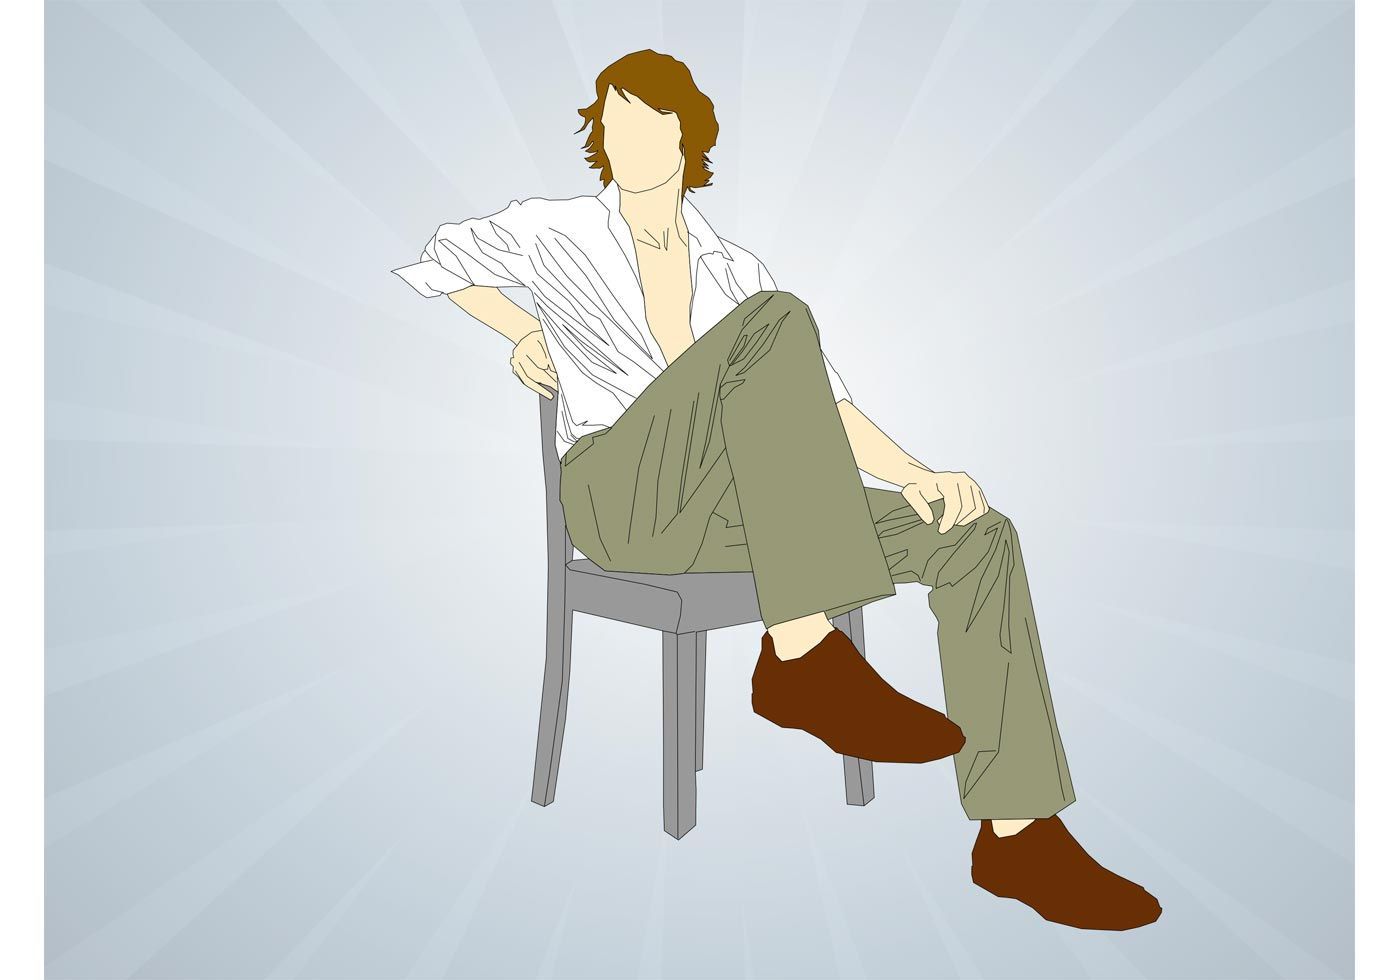 Man Sitting On Chair Download Free Vector Art Stock